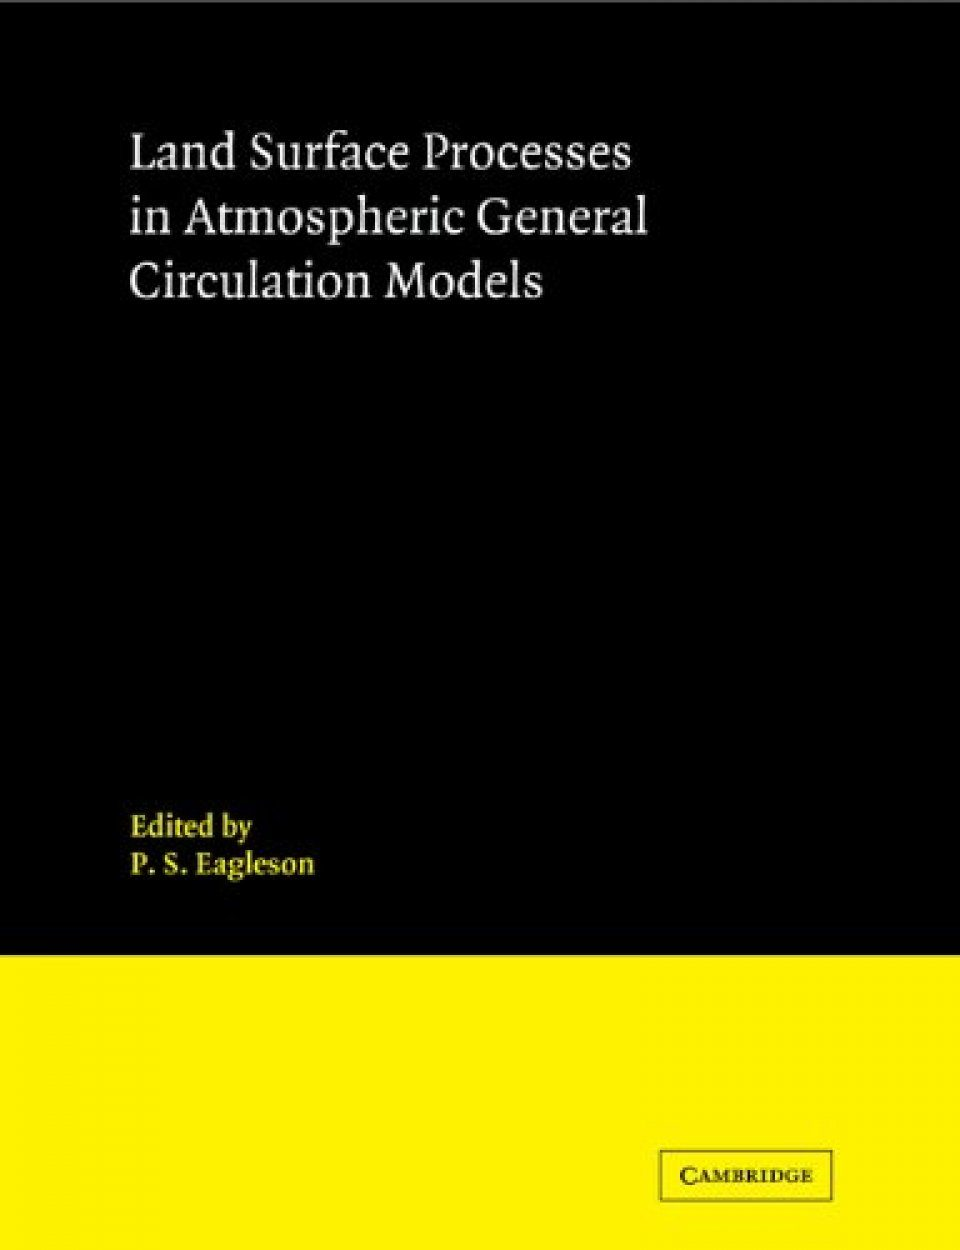 Land Surface Processes in Atmospheric General Circulation Models